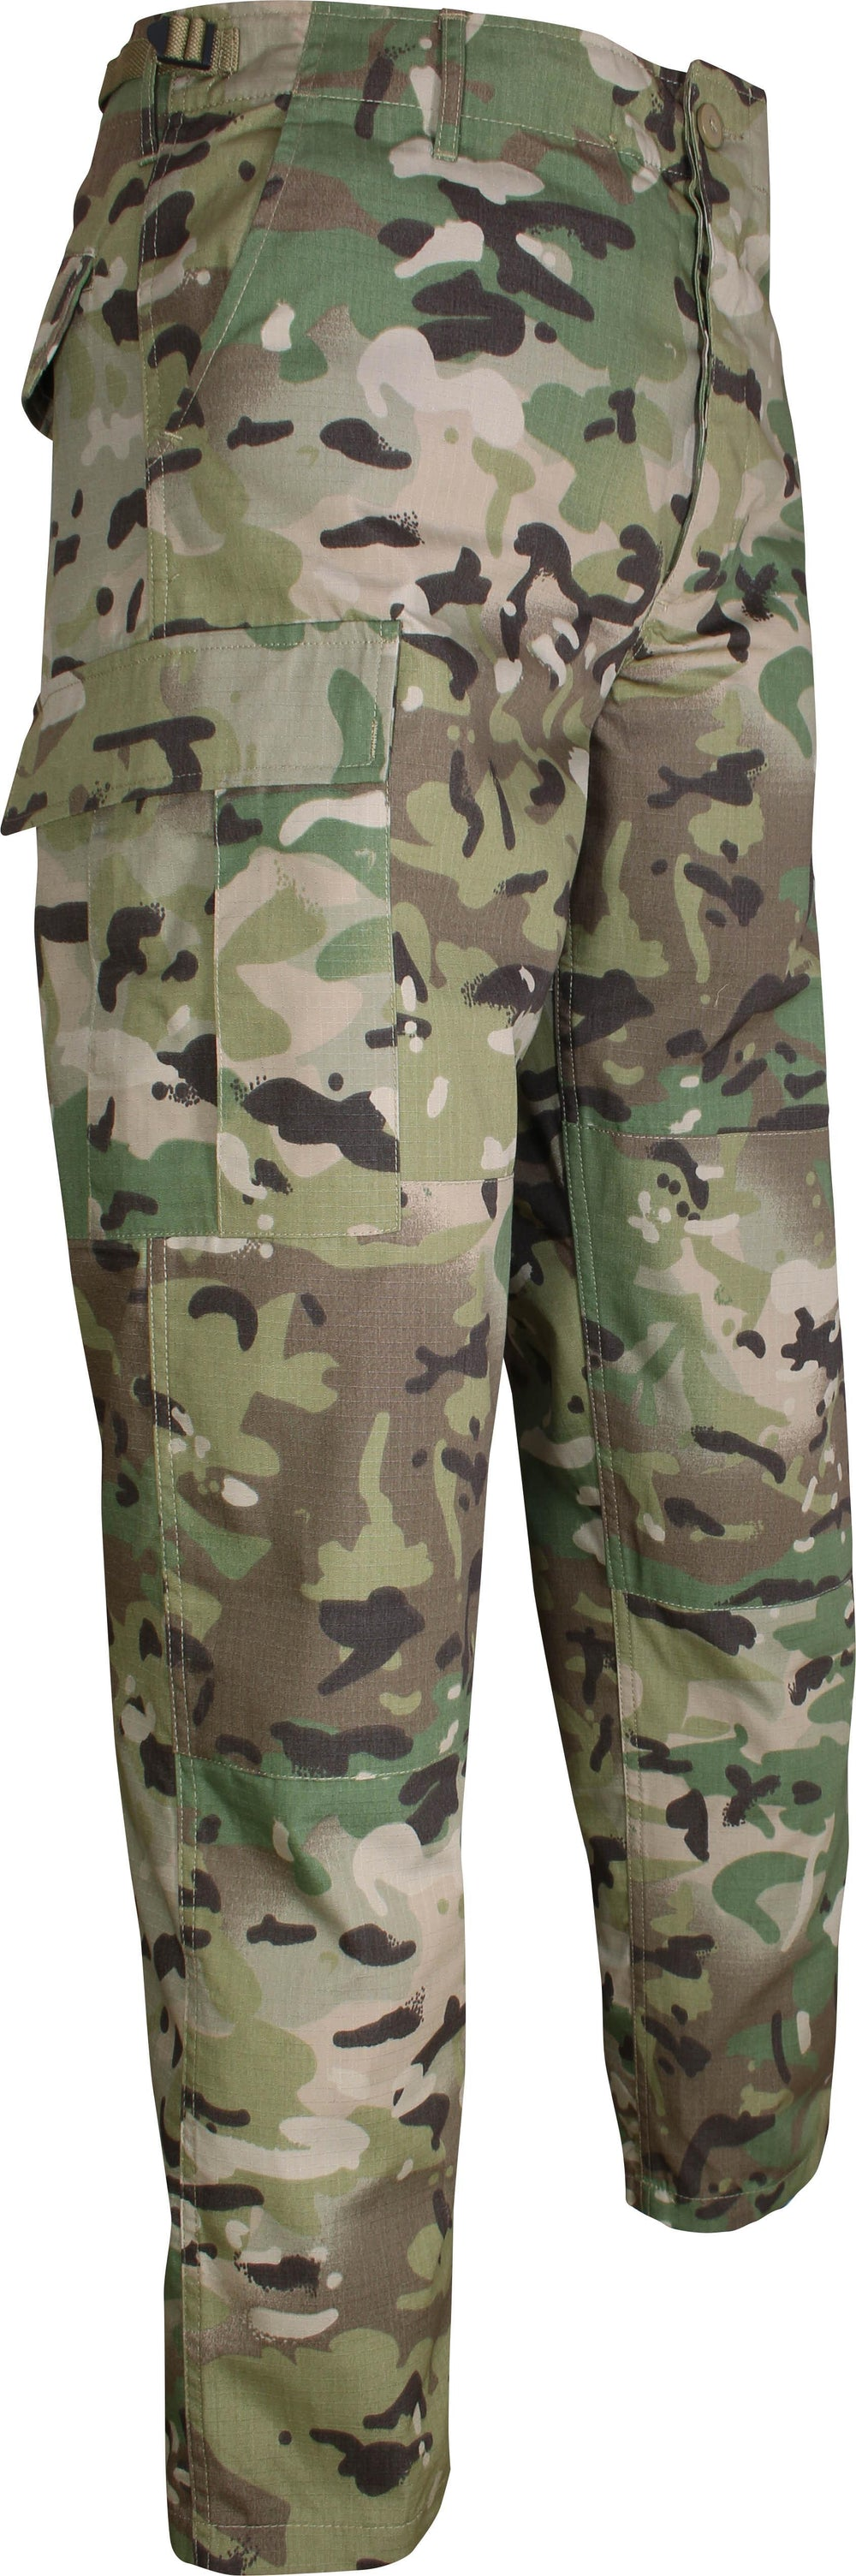 Viper Tactical BDU Trousers